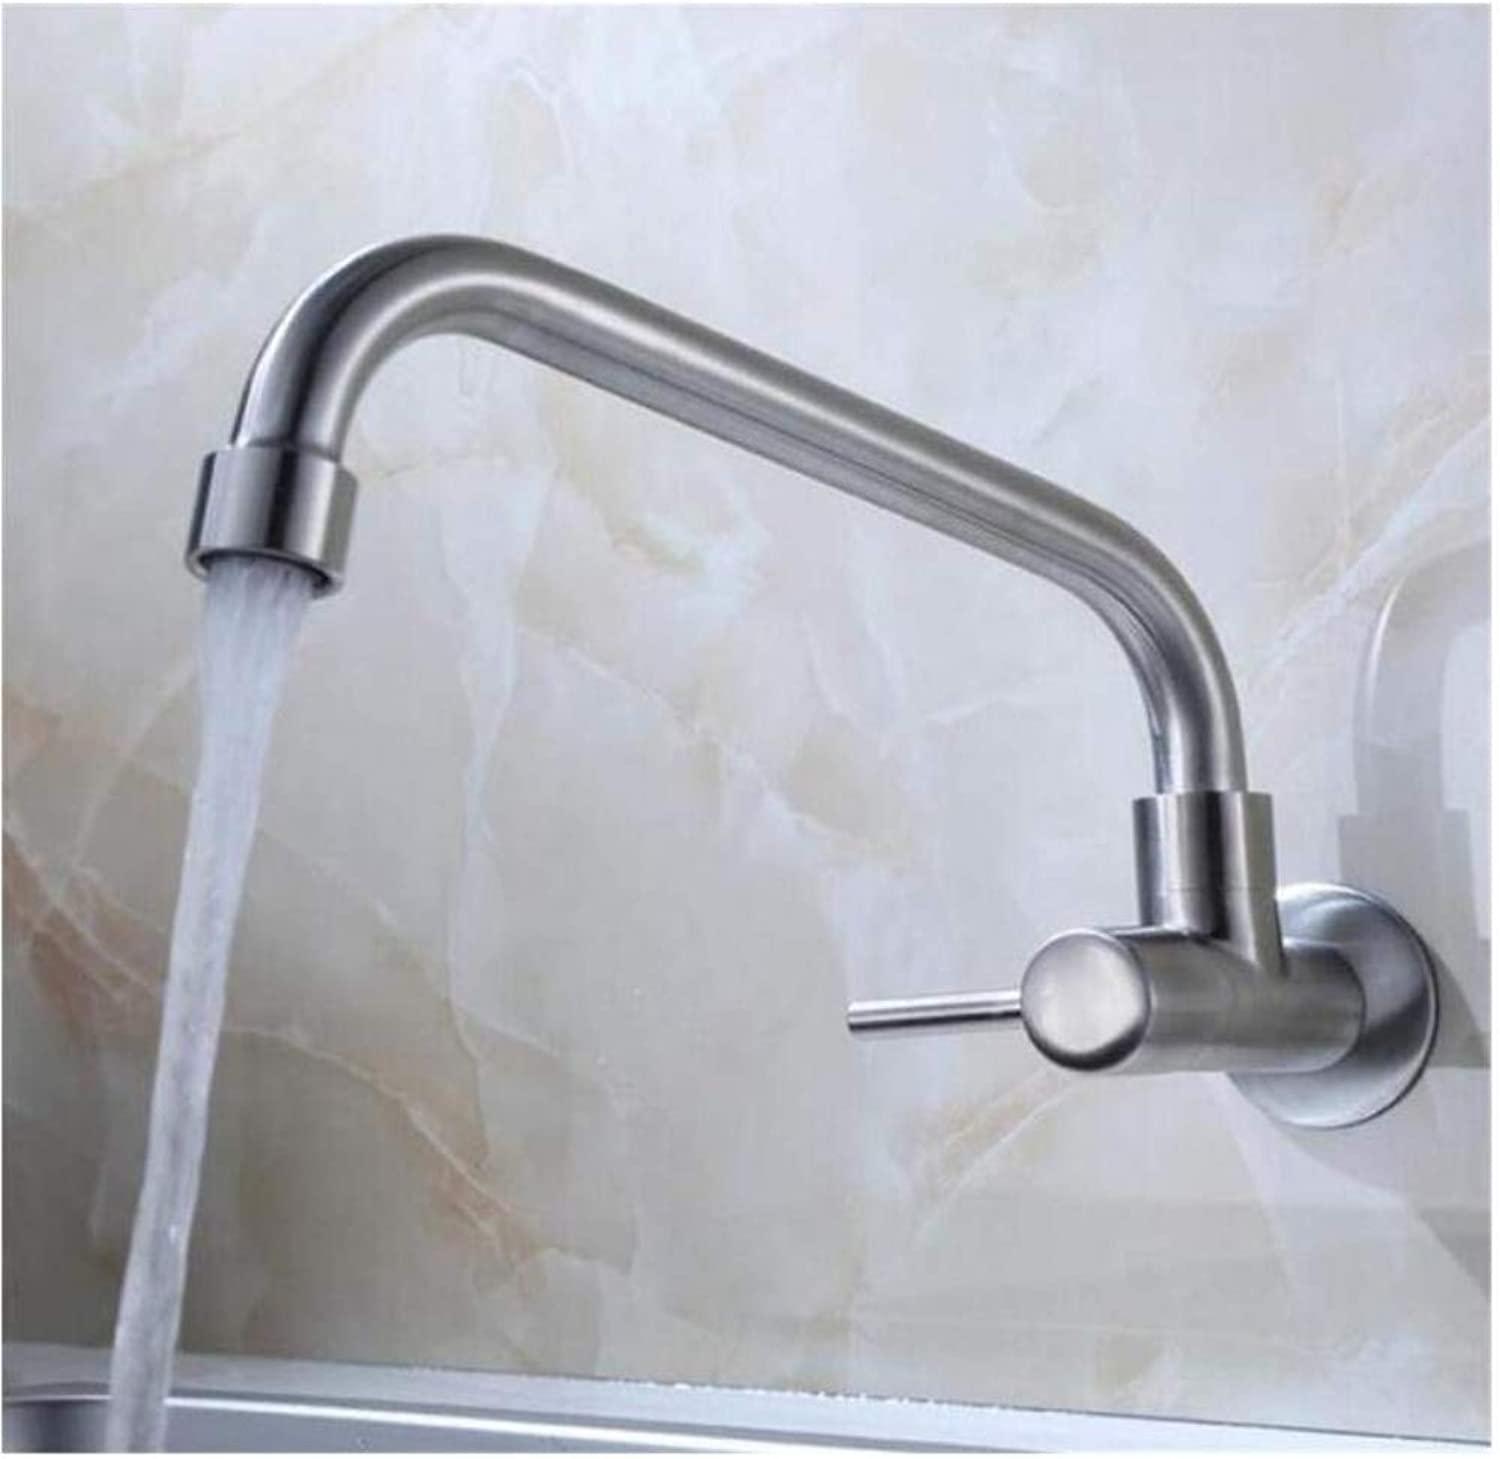 Brass Wall Faucet Chrome Brass Faucetfaucet Single Handle Hole Mixer Tap